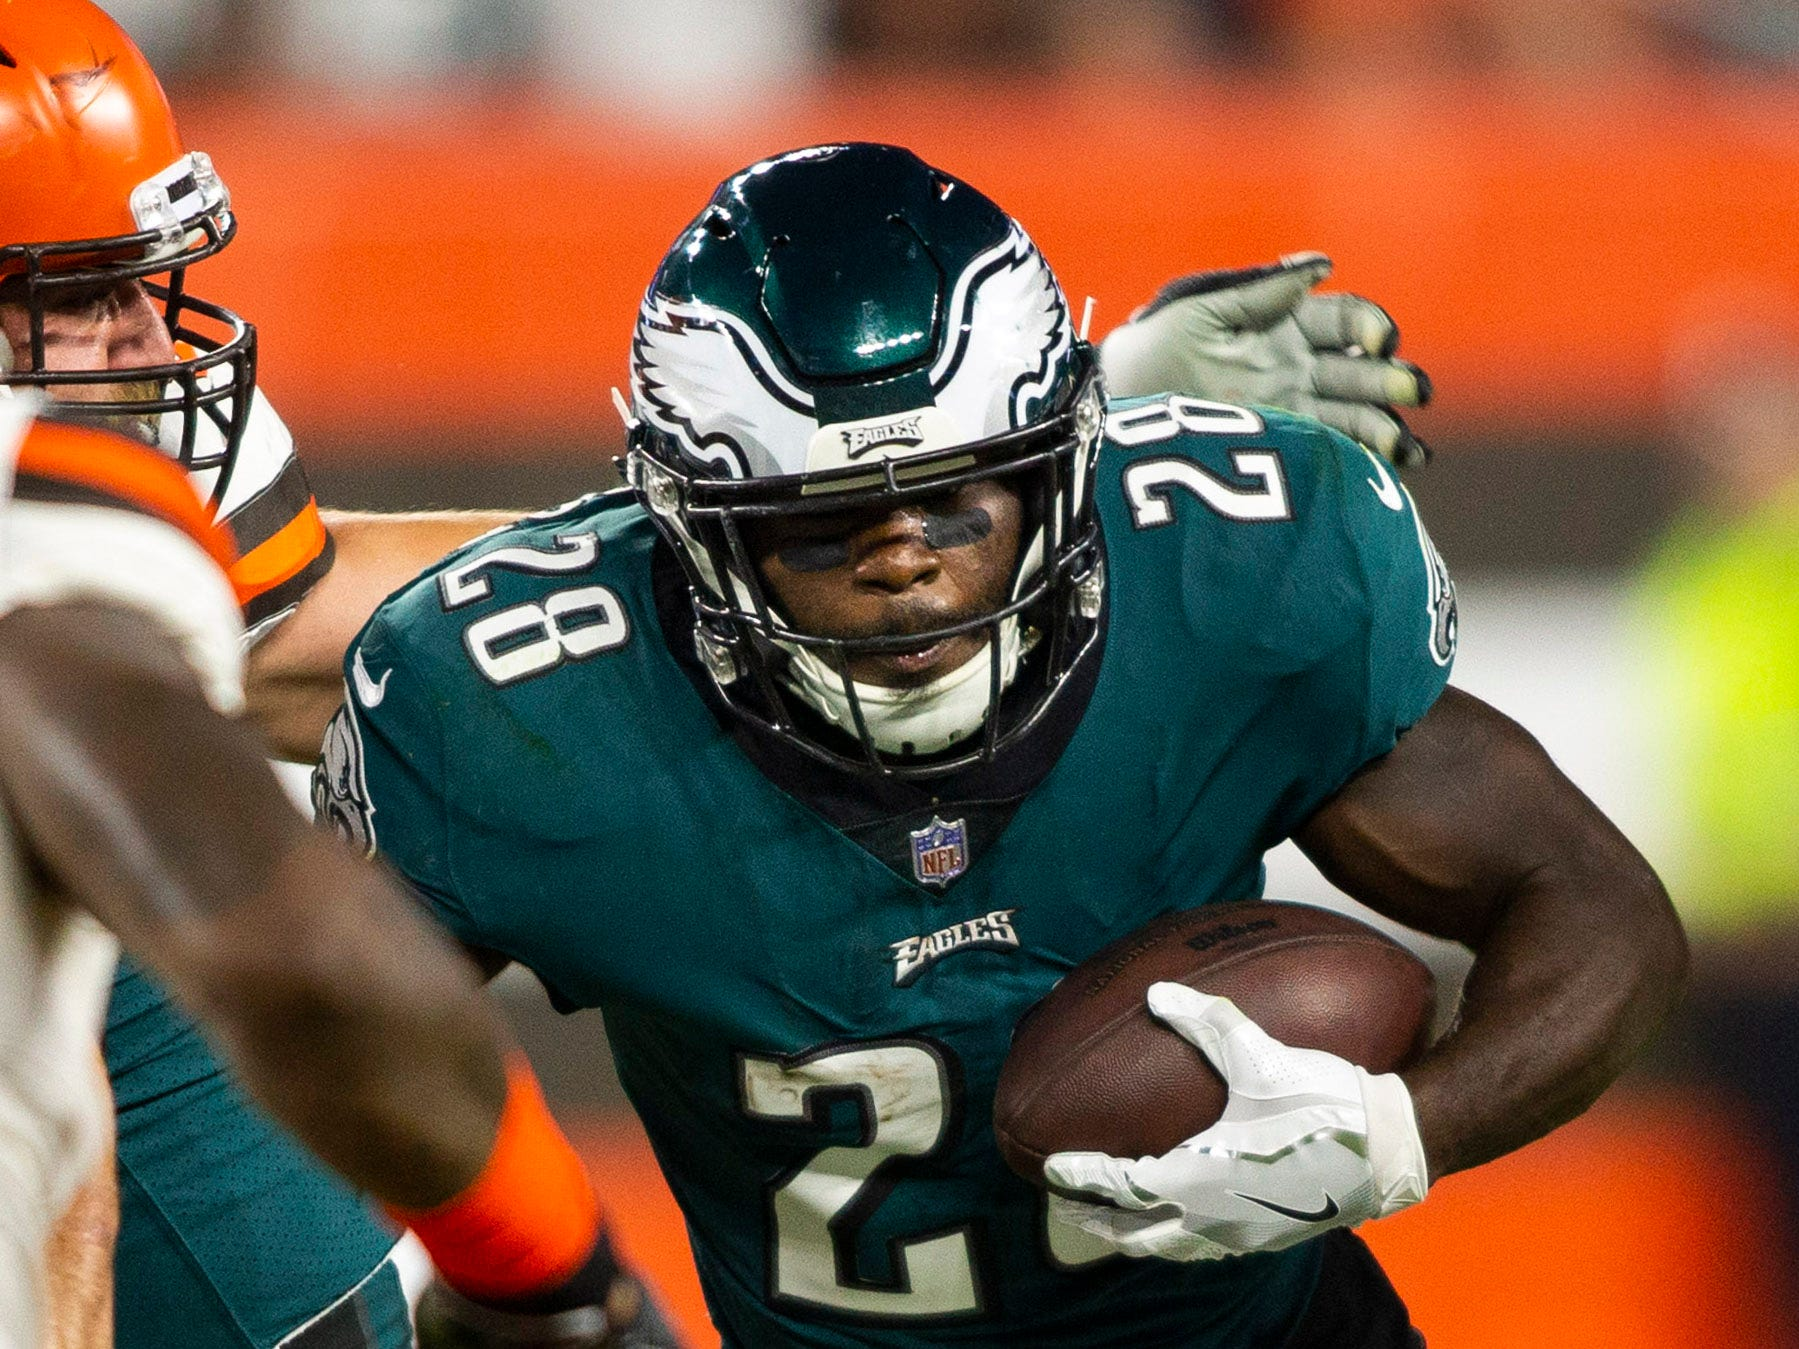 Philadelphia Eagles running back Wendell Smallwood runs the ball against the Cleveland Browns during the first quarter at FirstEnergy Stadium.